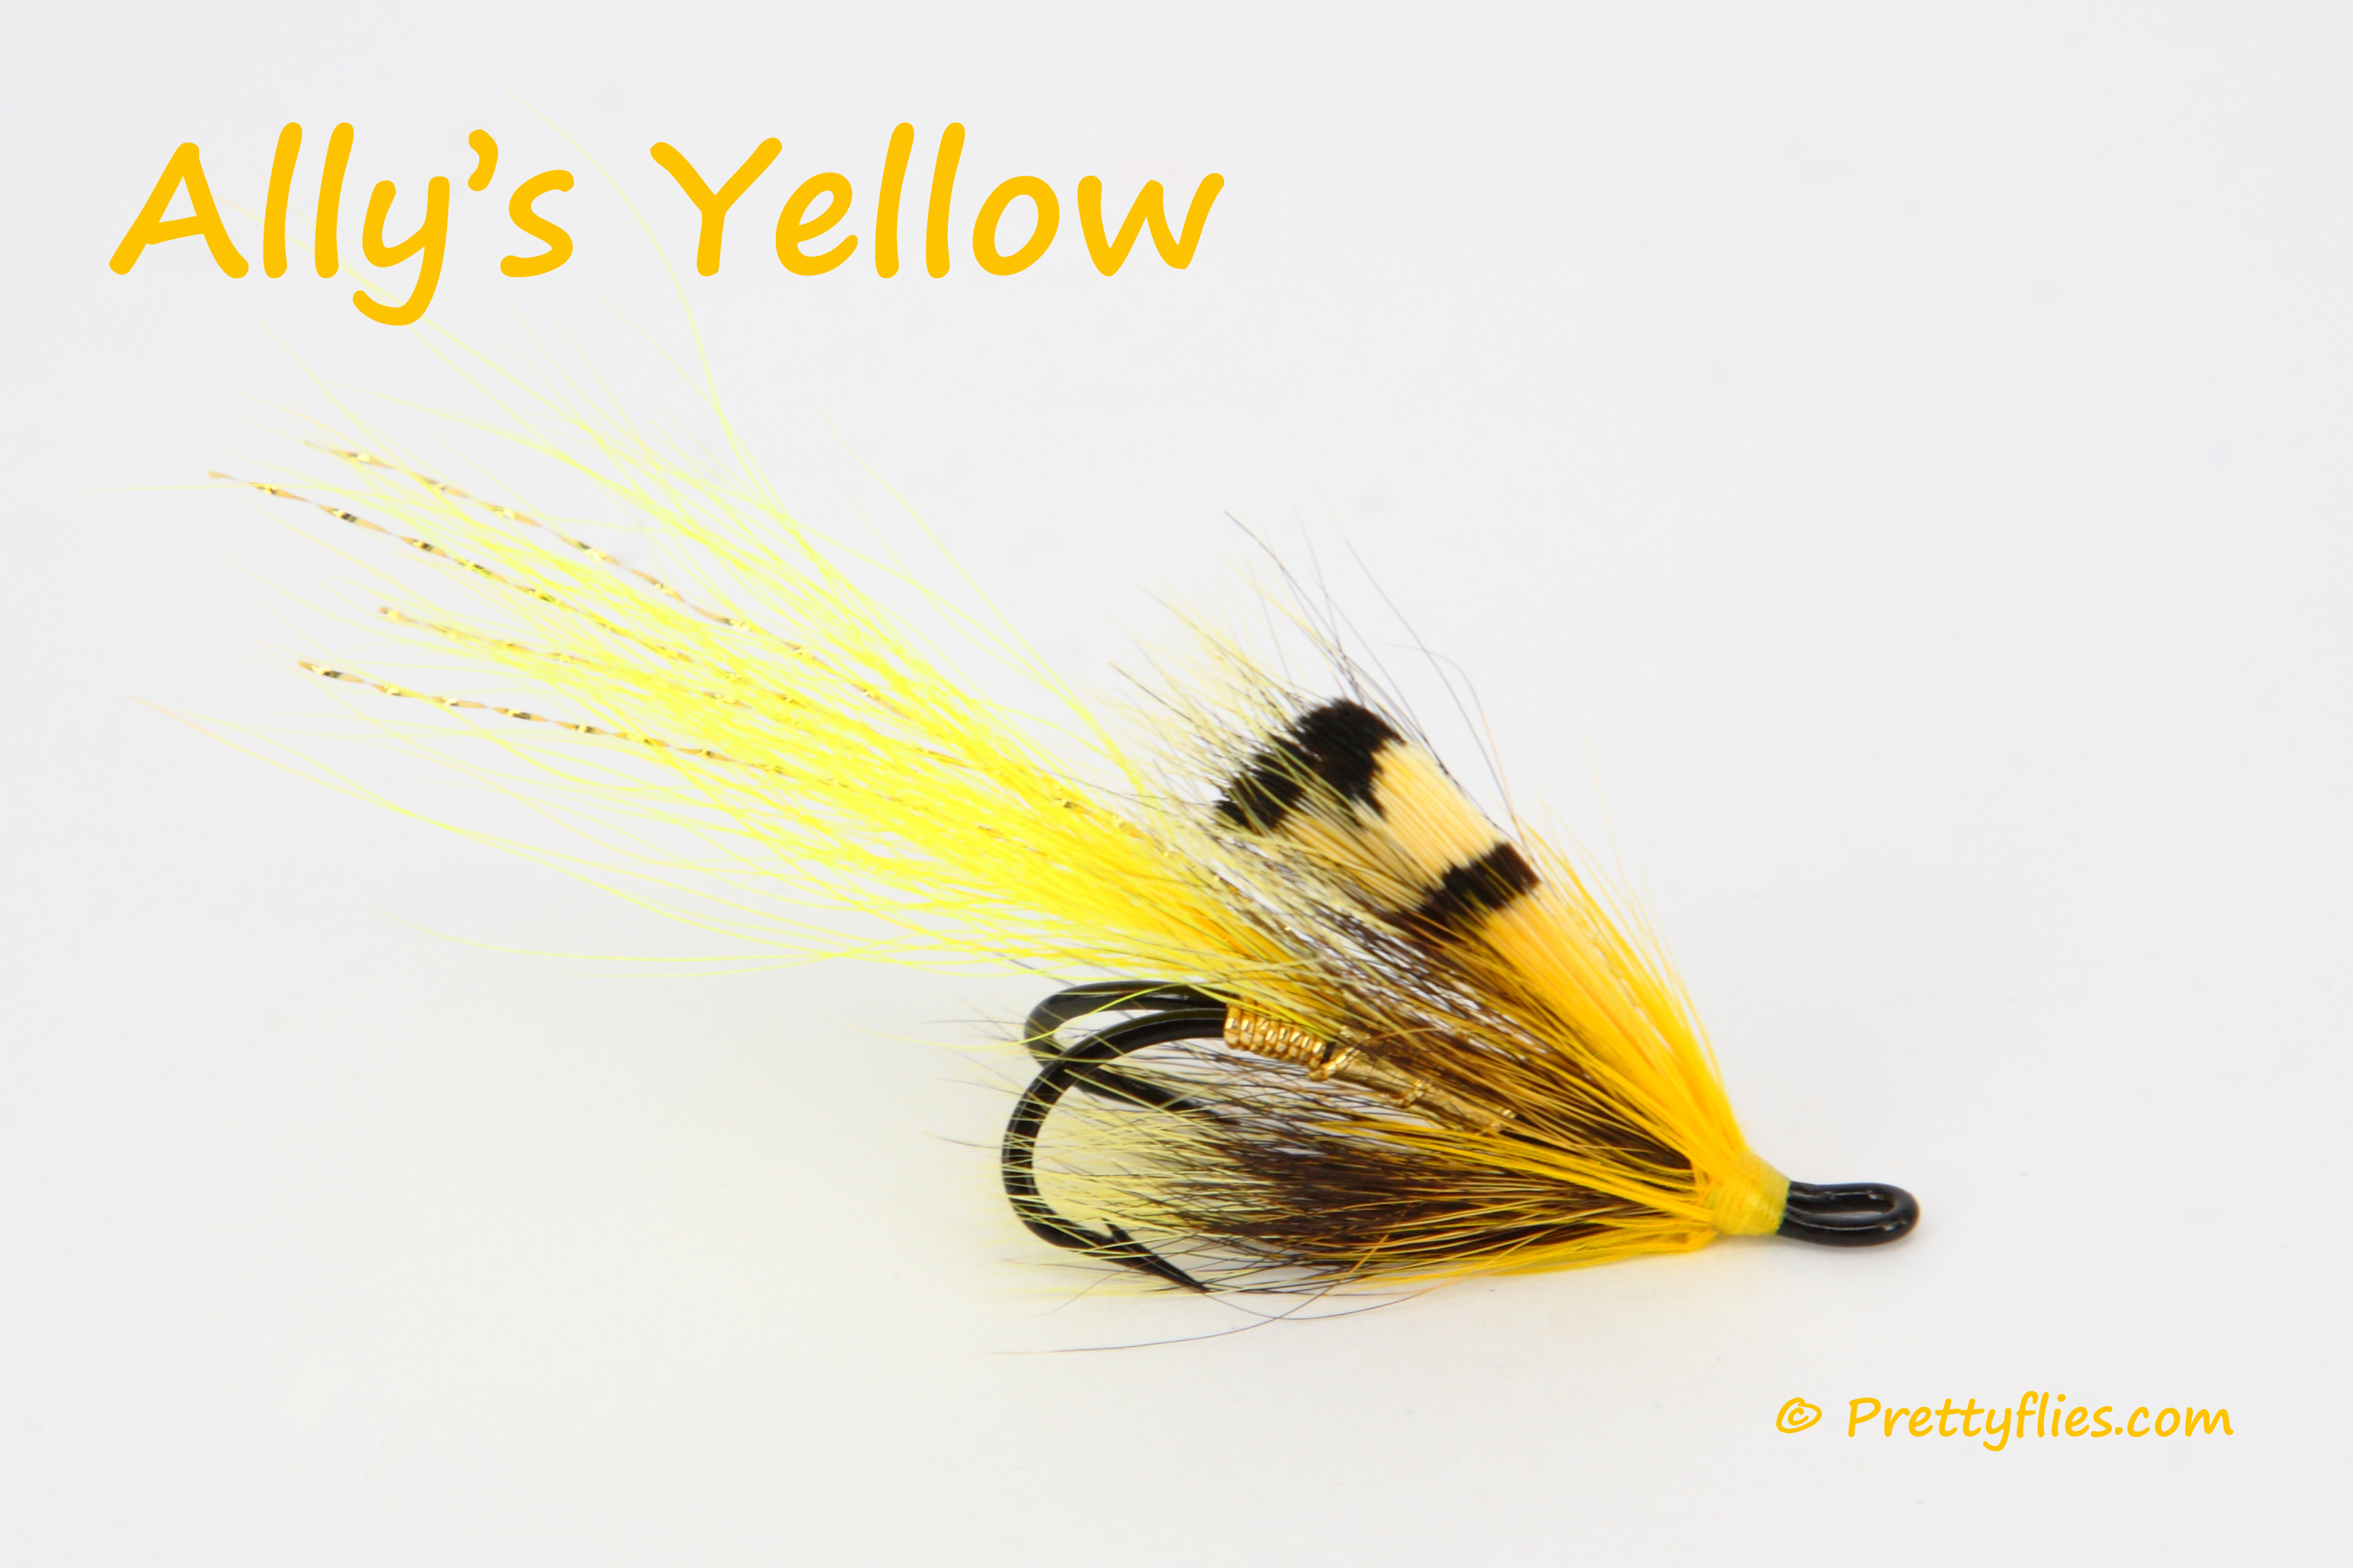 Allys Yellow copy.jpg